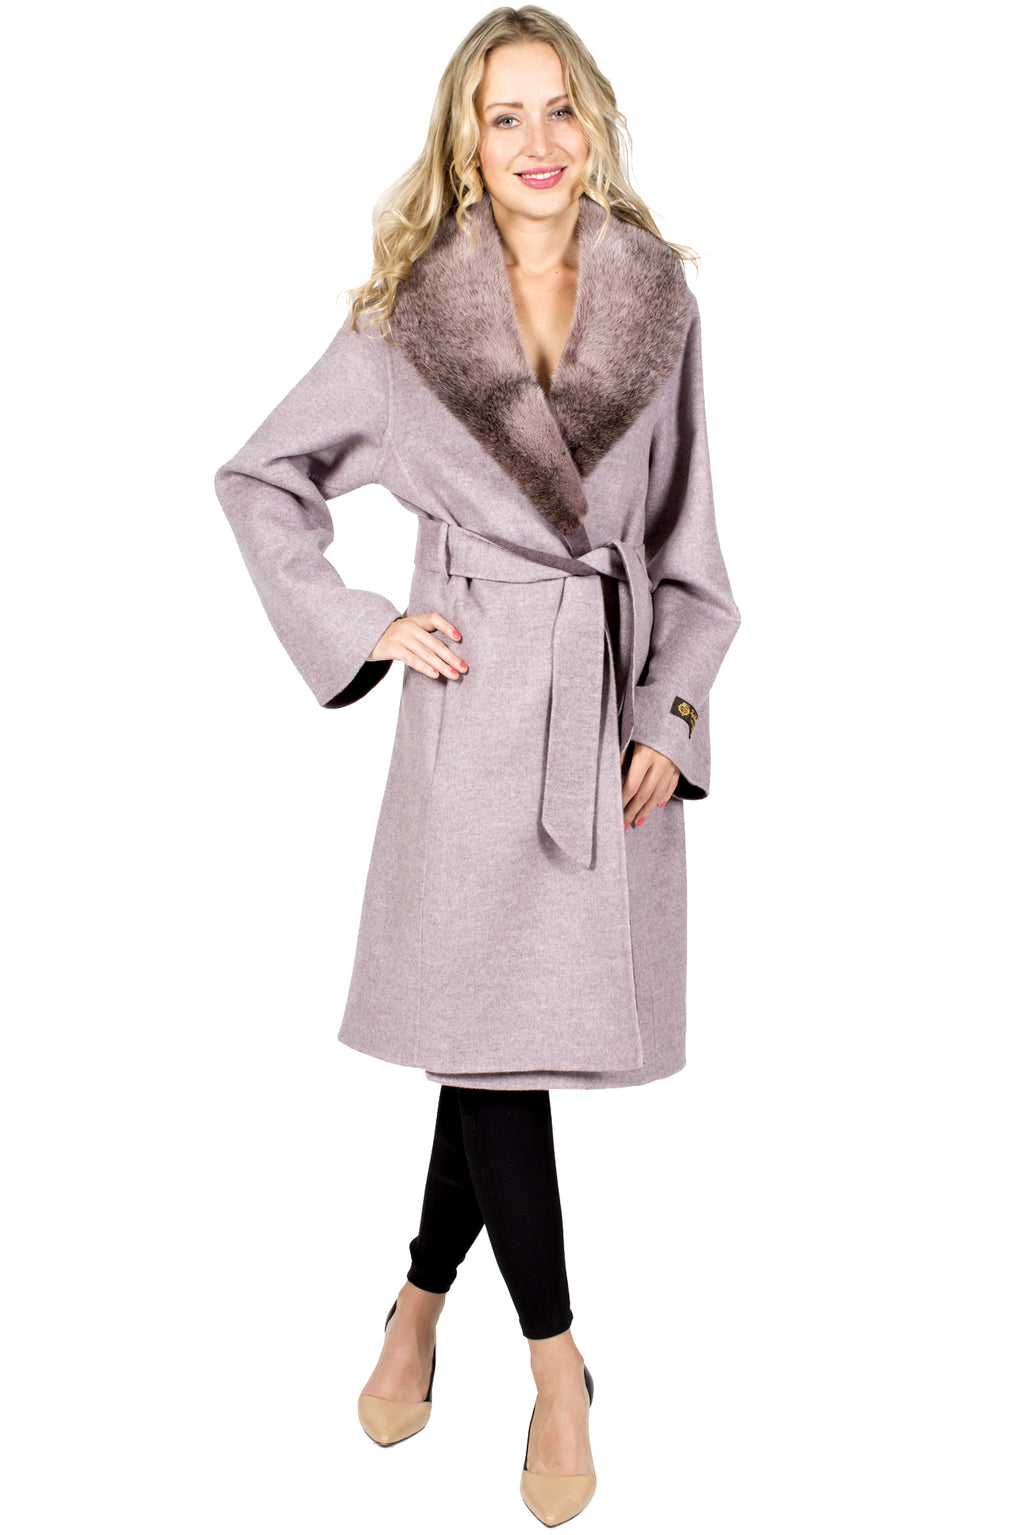 100% Cashmere Wrap Coat with Mink Collar